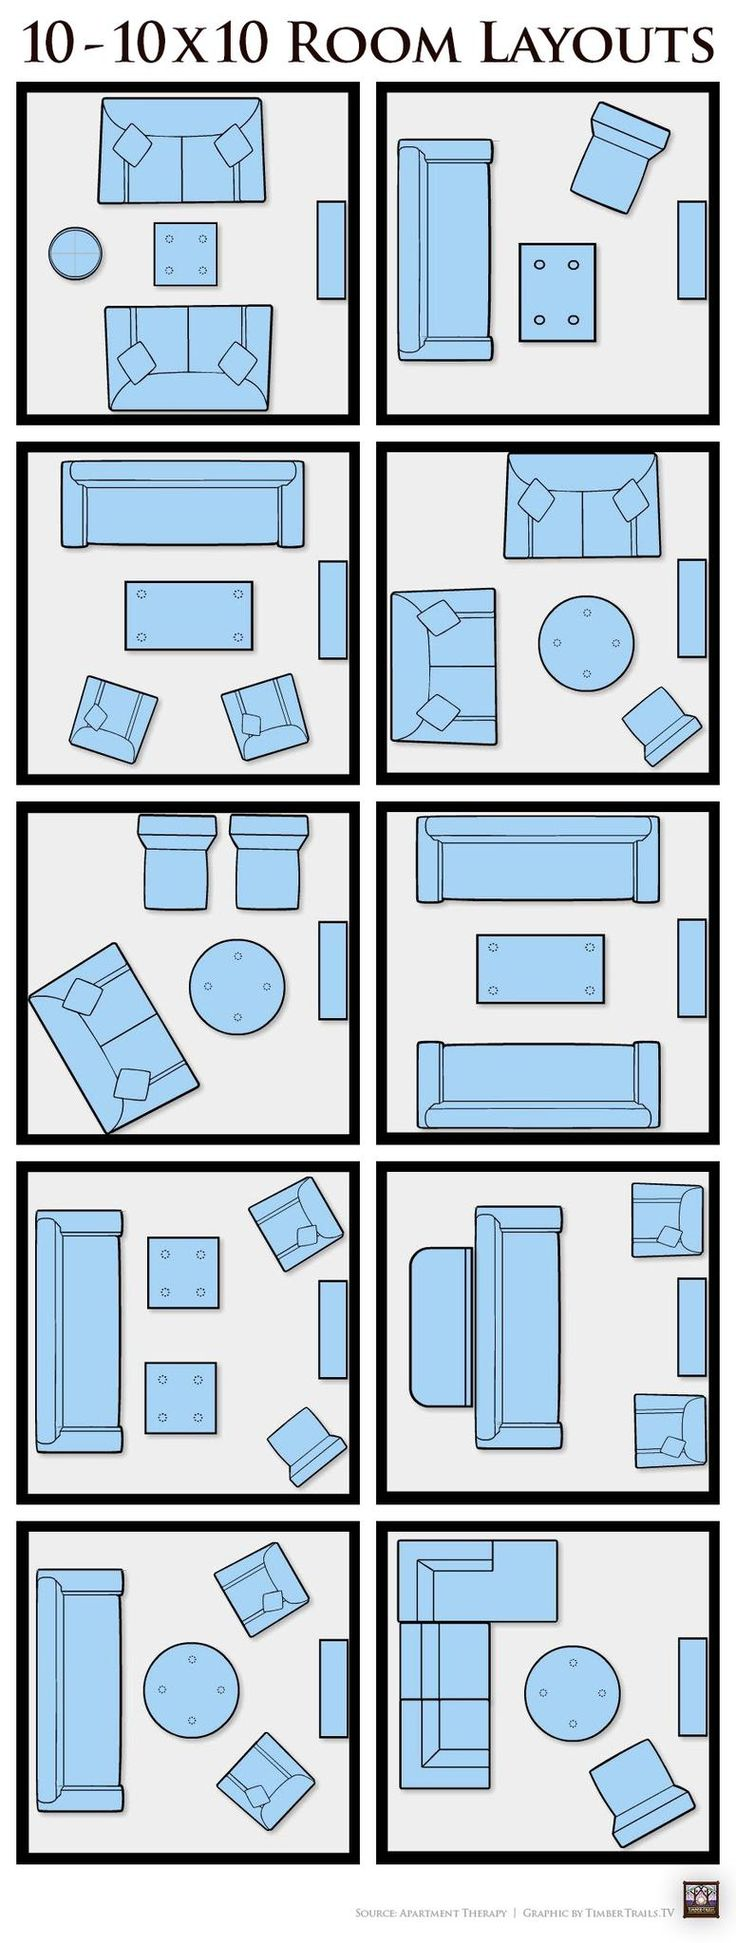 House room layout